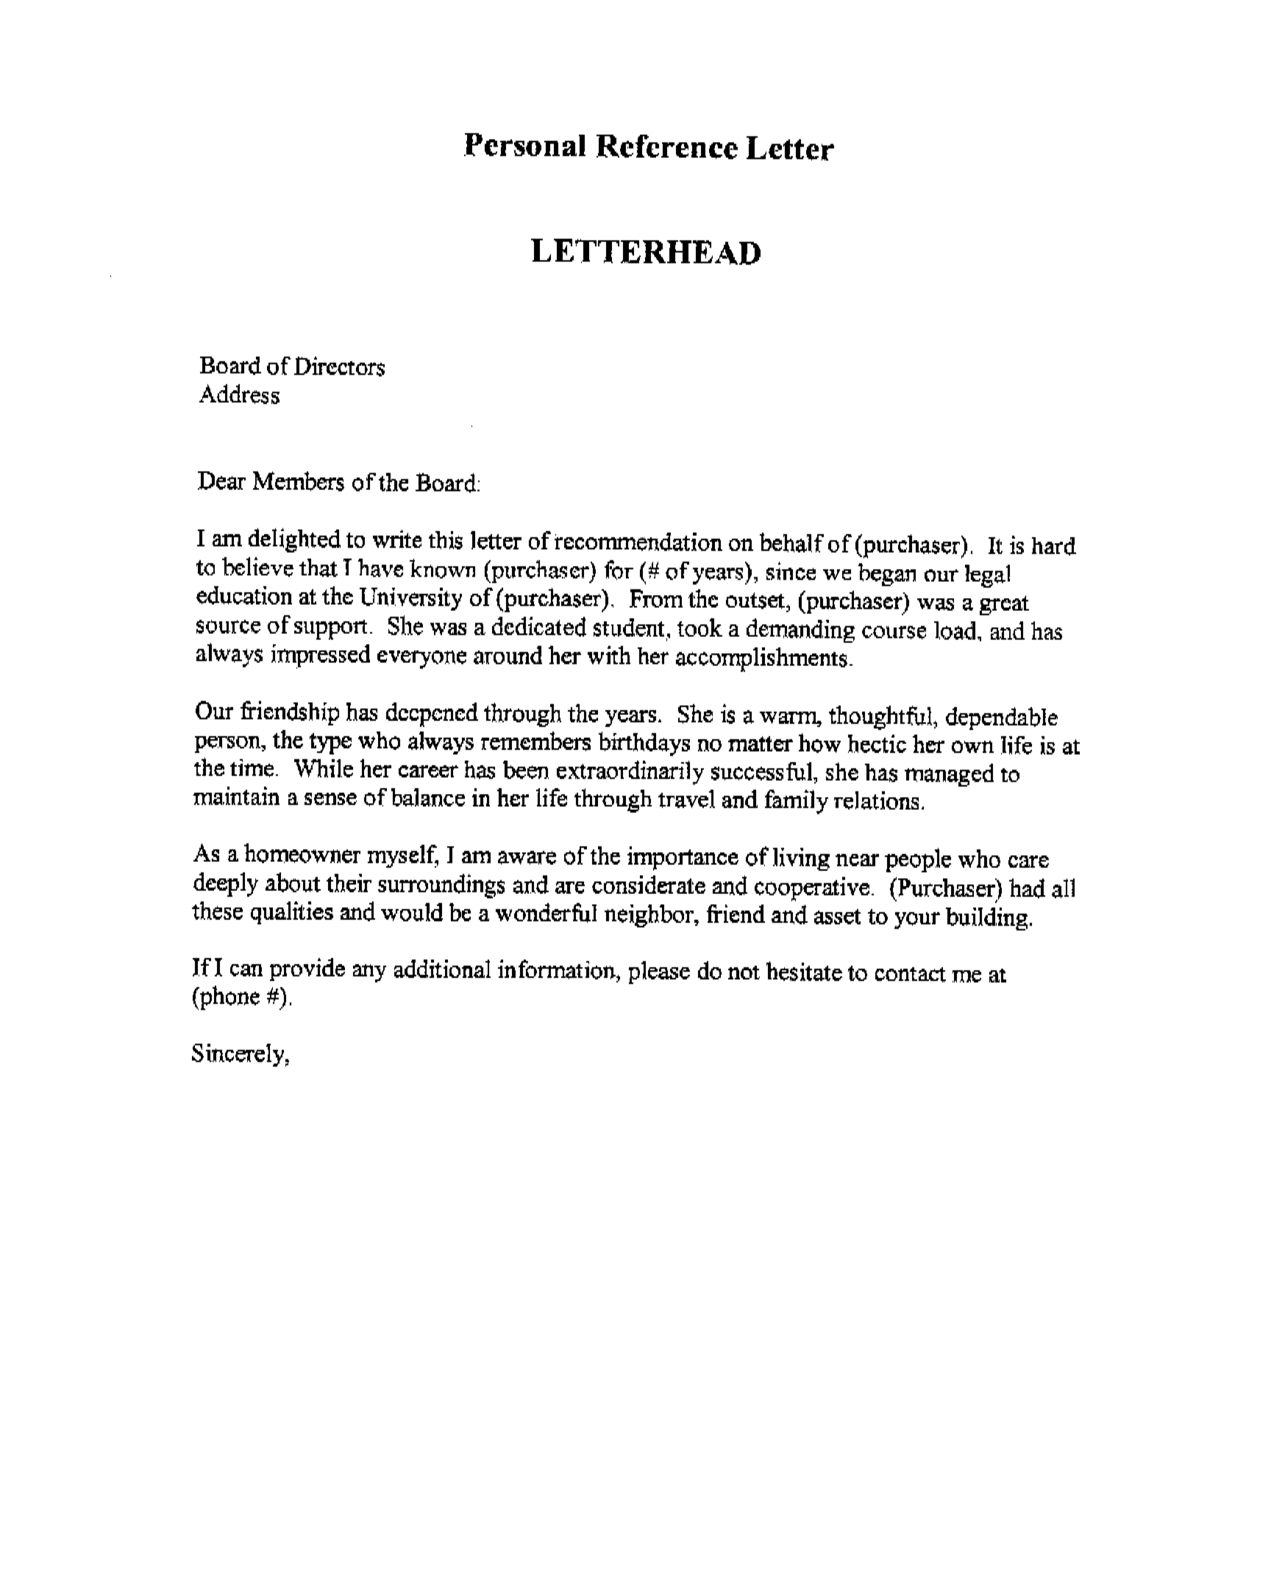 personal reference letter sample for a friend Parlobuenacocinaco